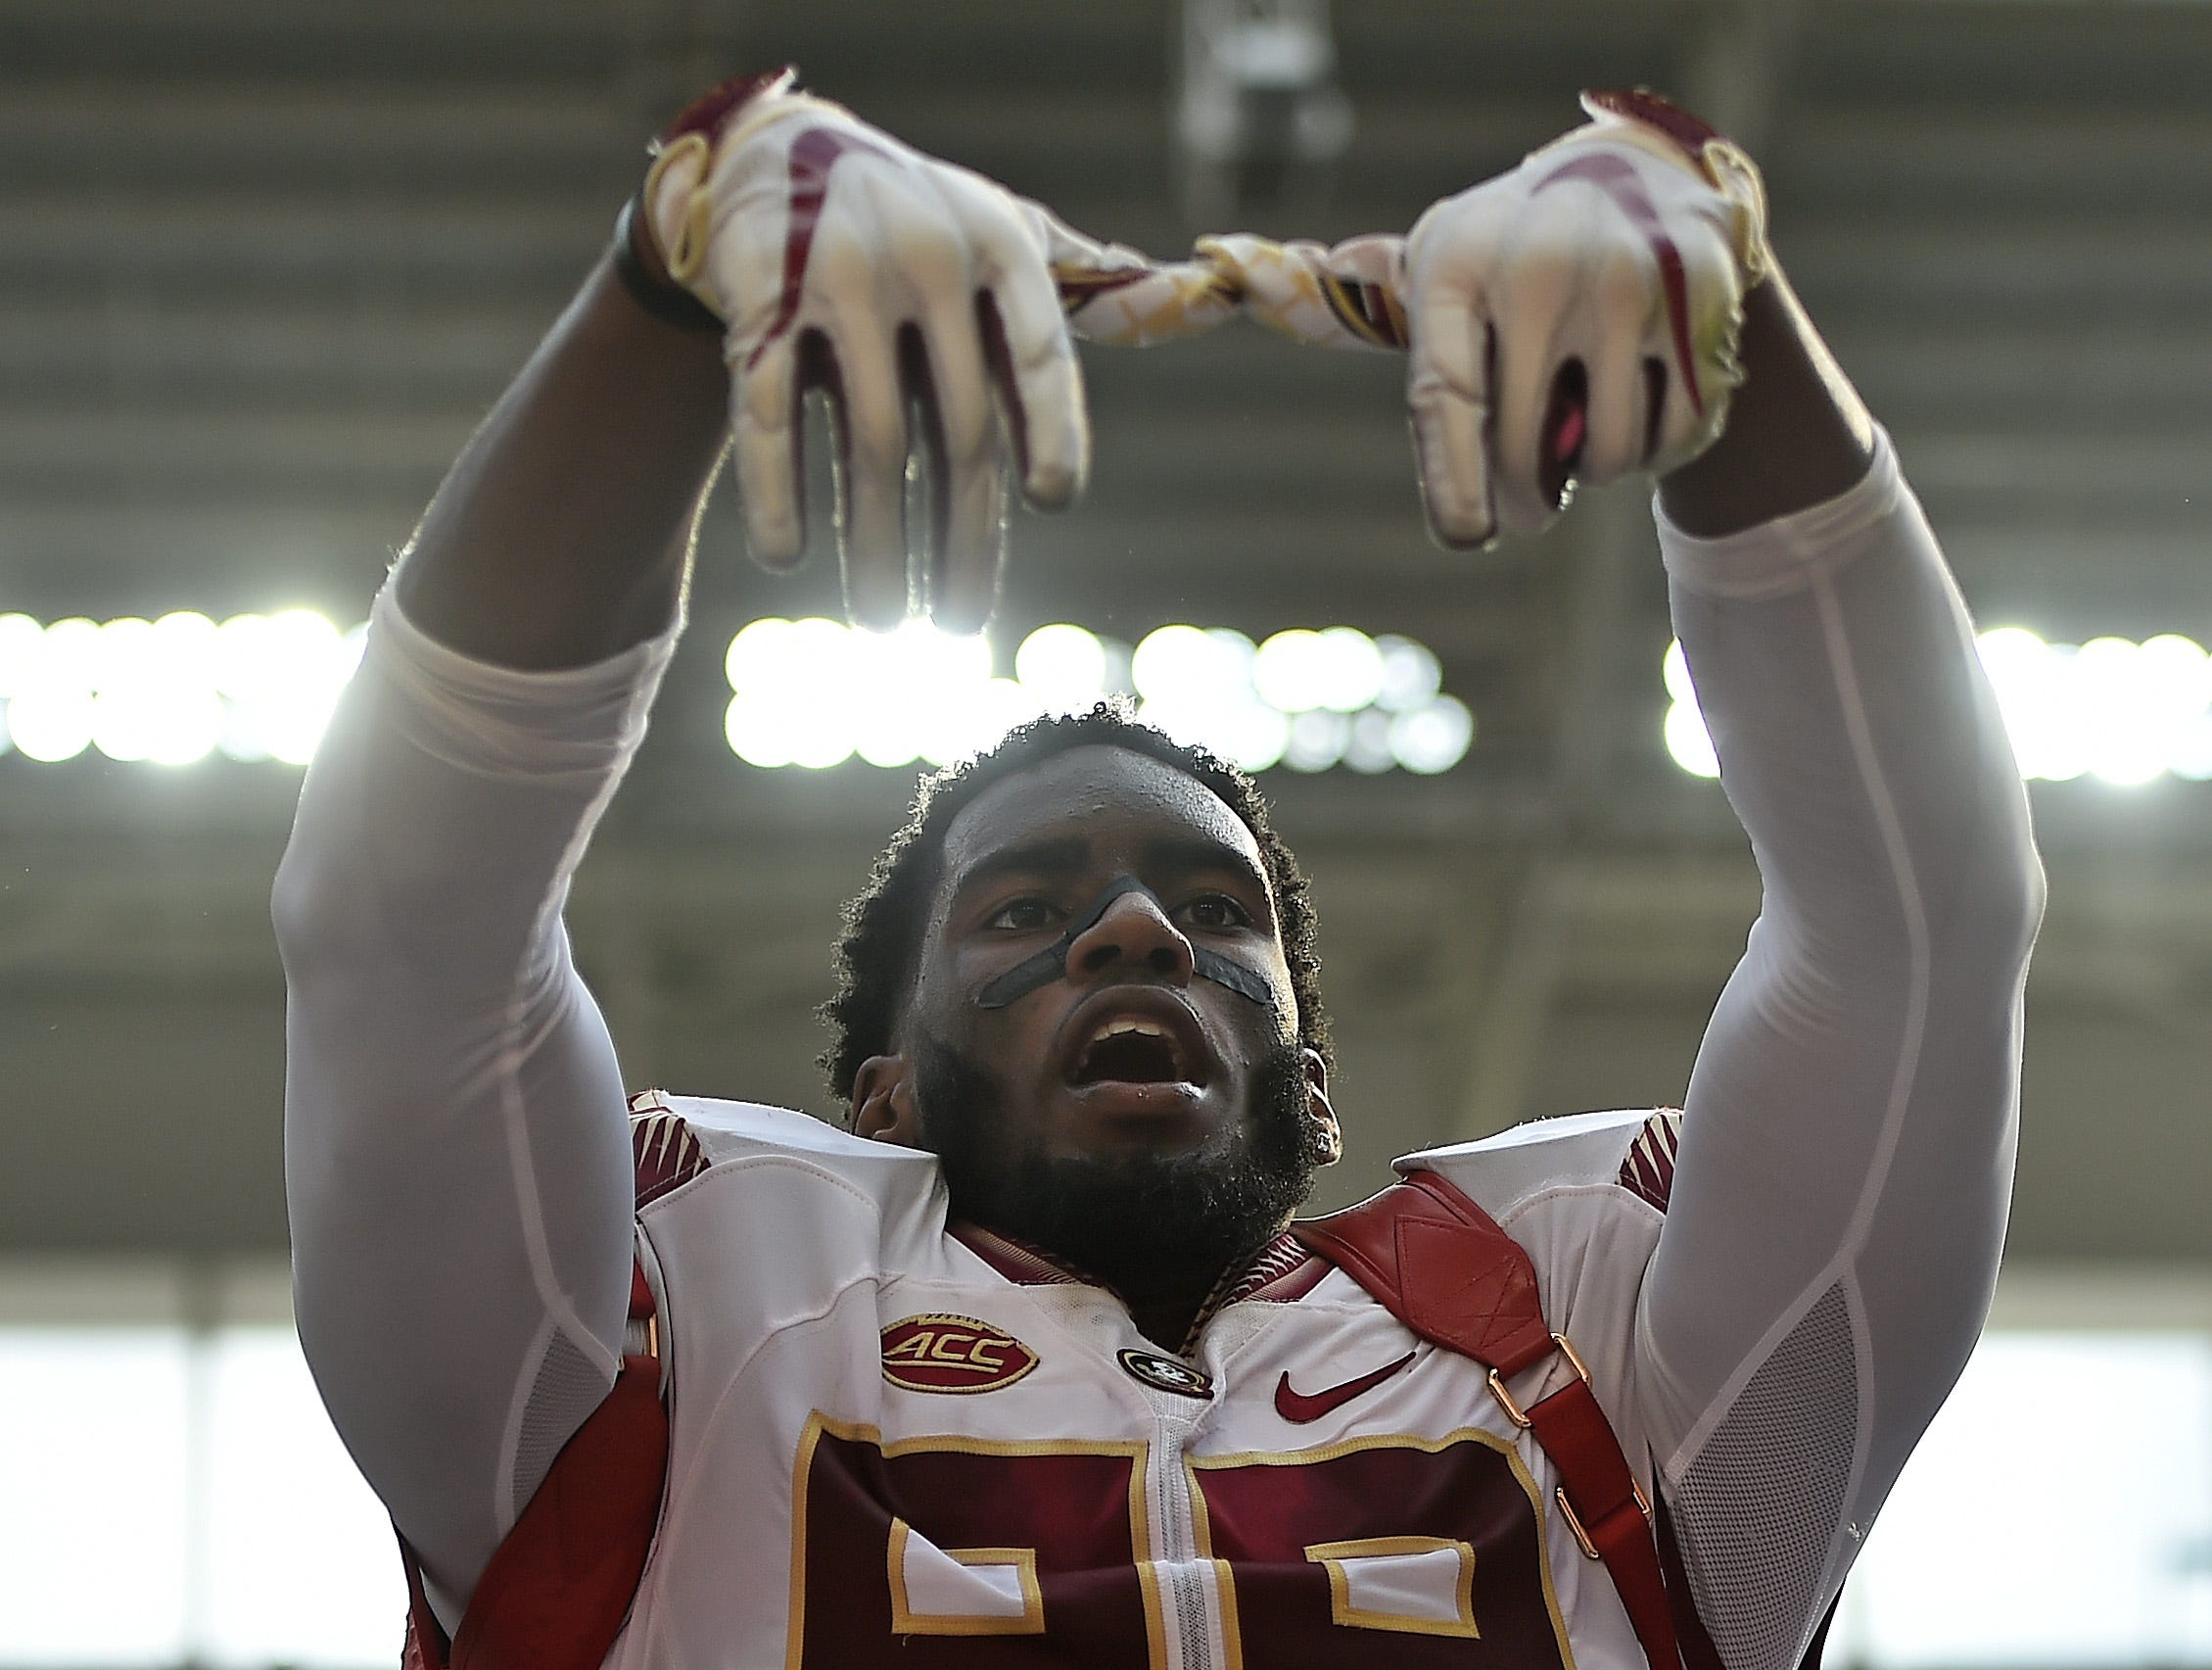 Oct 6, 2018; Miami Gardens, FL, USA; Florida State Seminoles defensive end Brian Burns (99) celebrates with the turn over backpack after receiving a fumble against the Miami Hurricanes during the first half at Hard Rock Stadium. Mandatory Credit: Jasen Vinlove-USA TODAY Sports